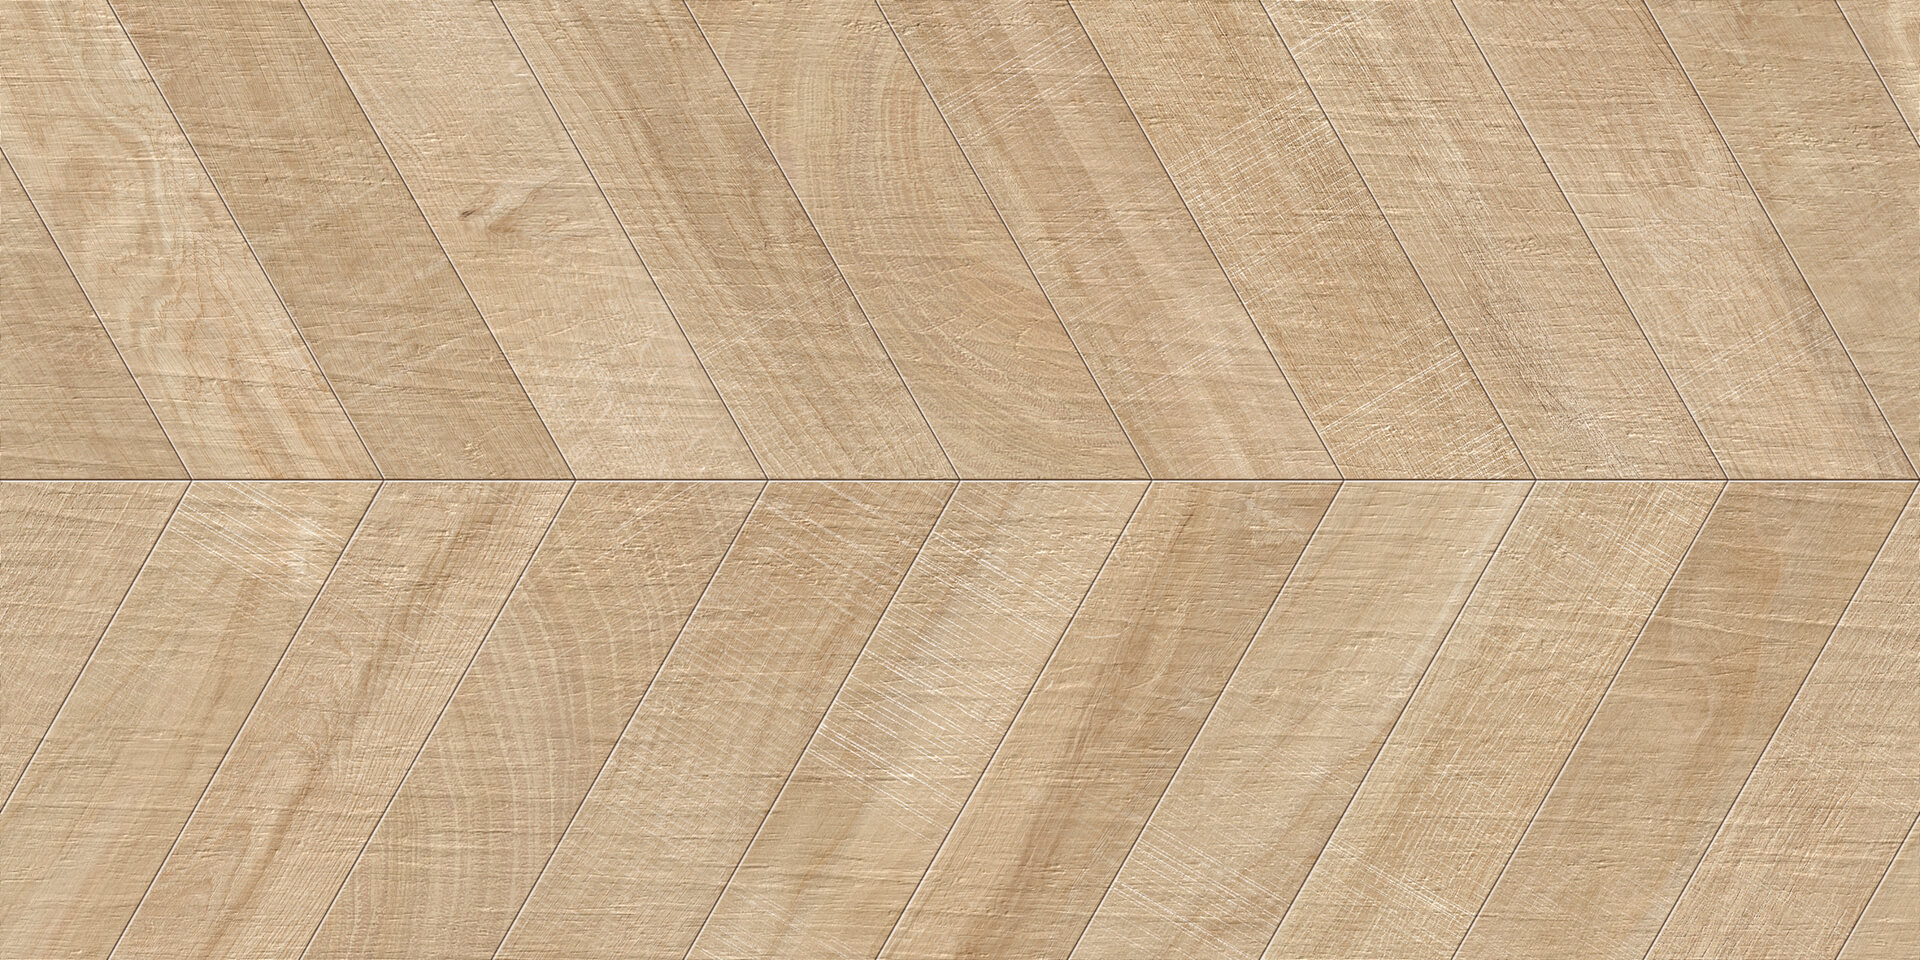 Artwood Chevron Maple 120x60